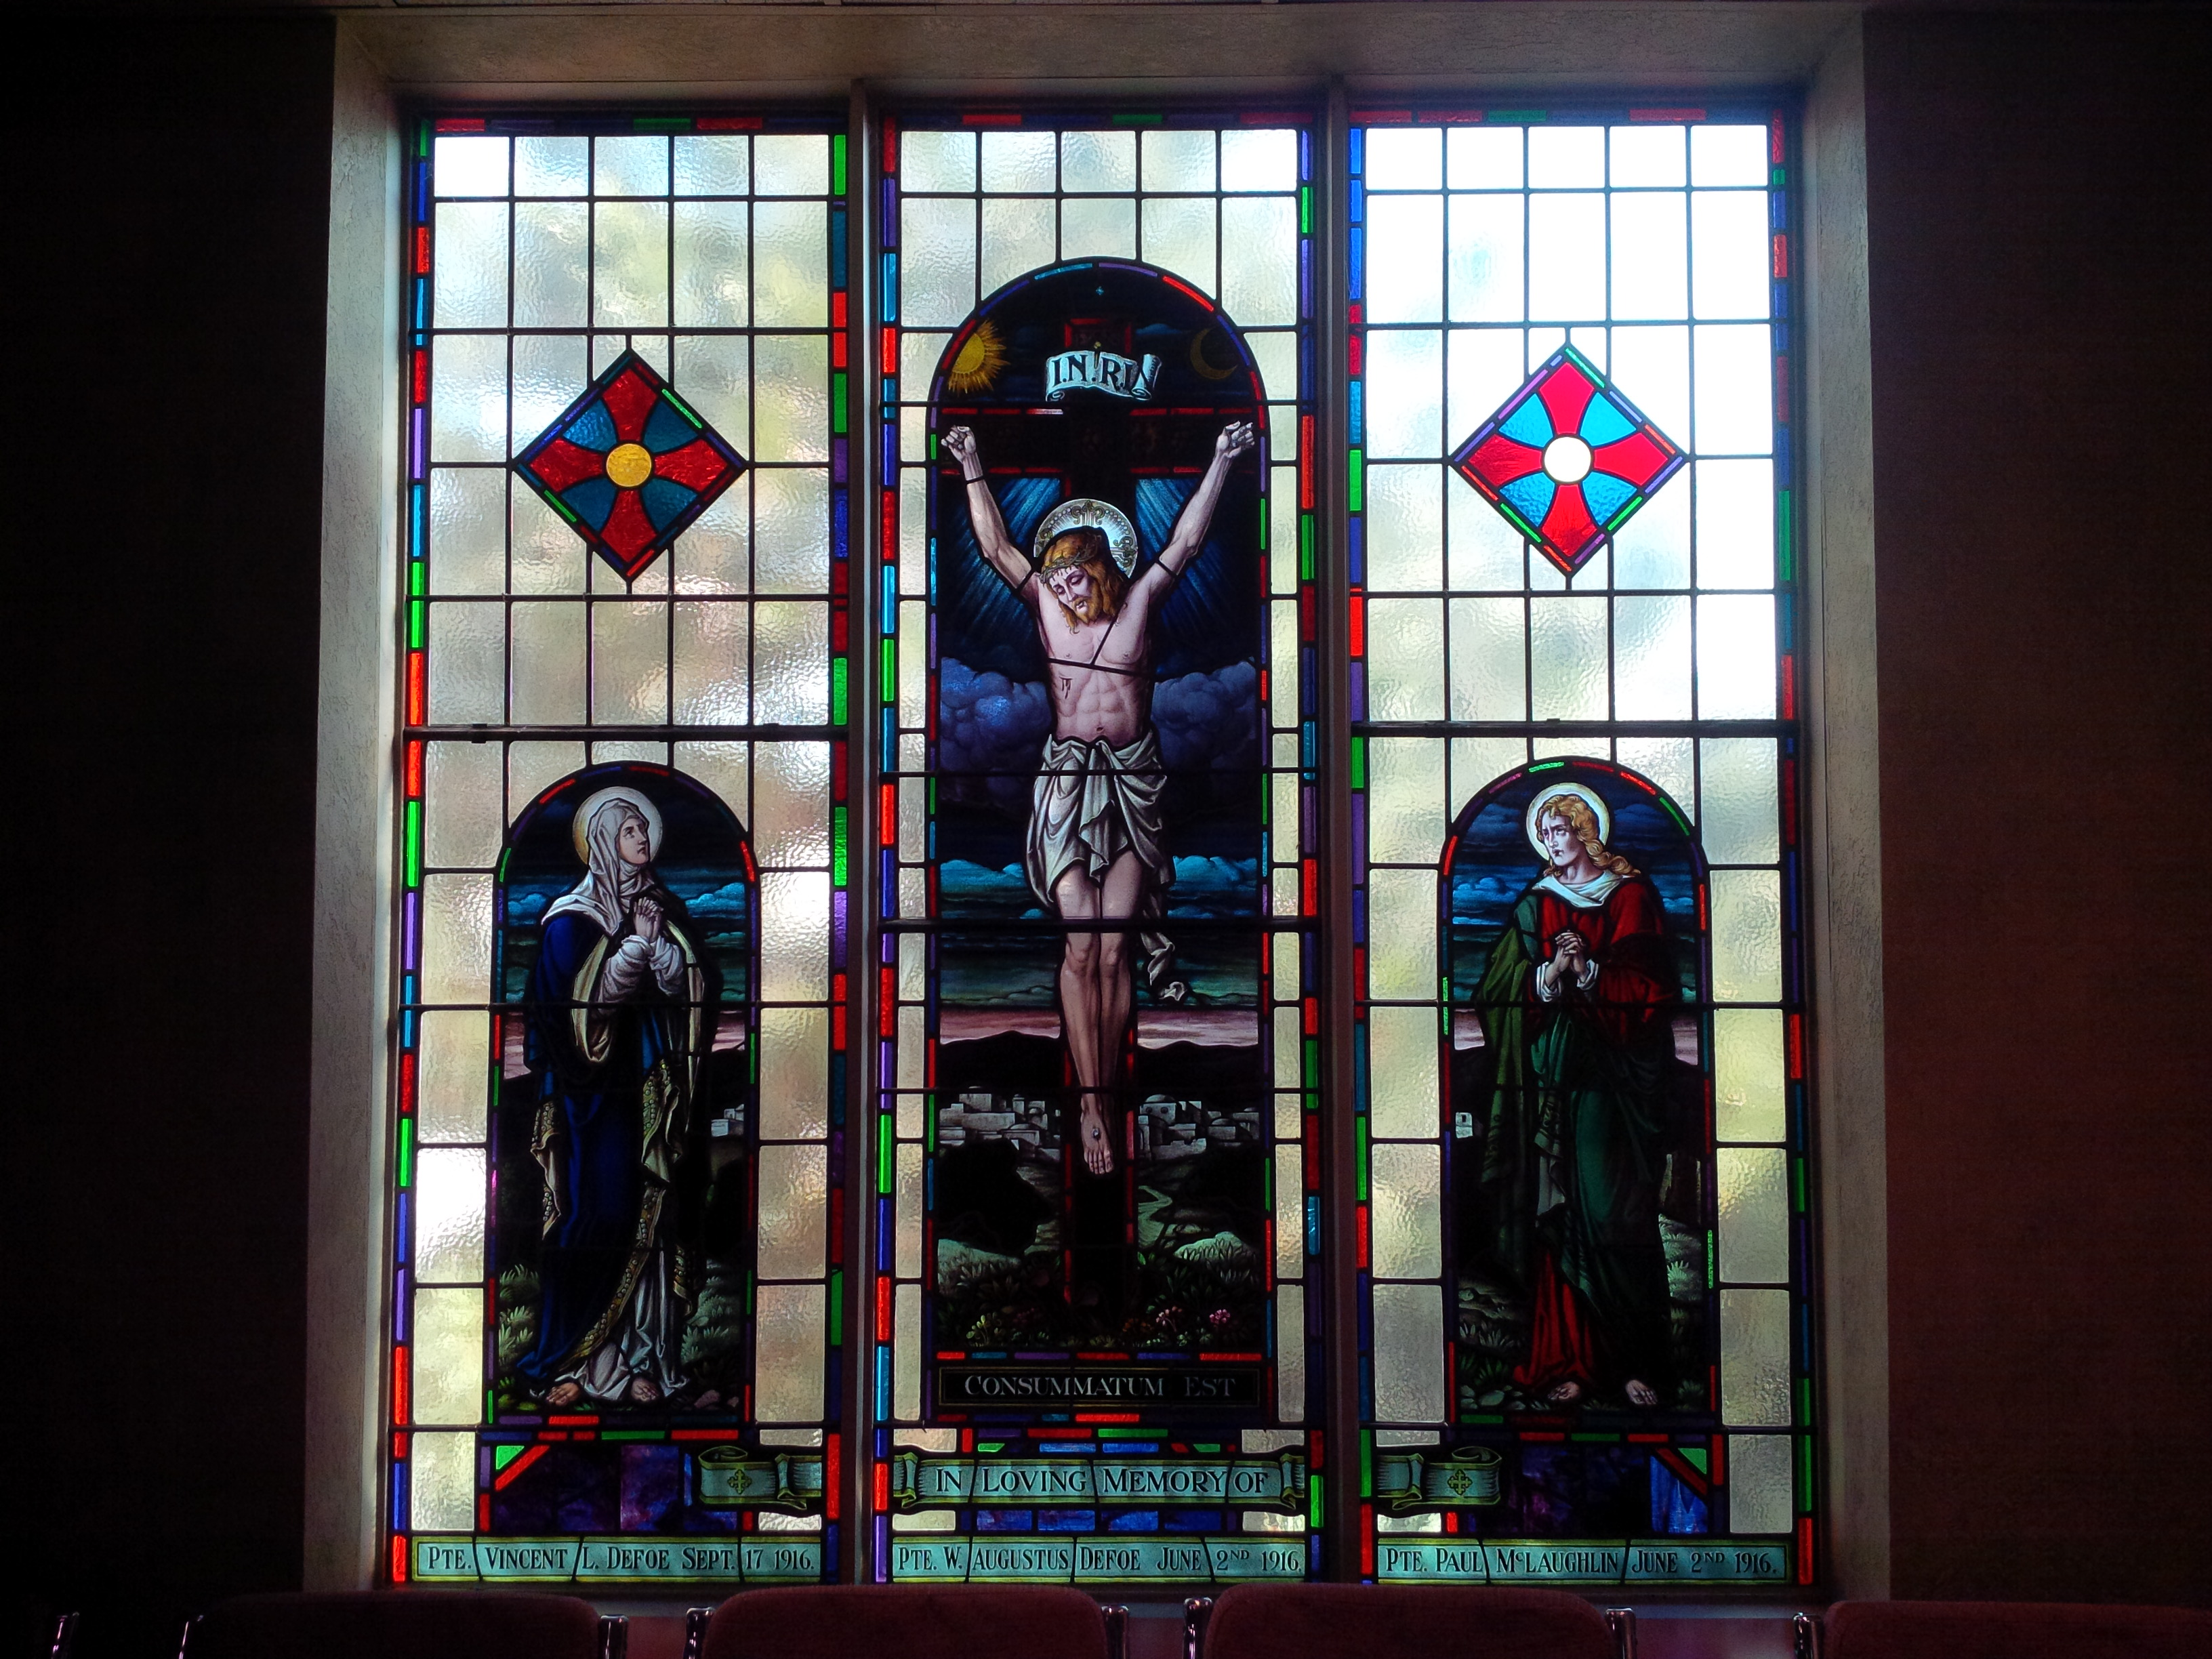 Memorial Stained Glass– Pvt. Paul Mclaughlin's name on stain glass window (bottom right) in Sts. Cyril and Methodius Roman Catholic Church in Mississauga, Ontario.  The stain glass was originally in St. Basil's Church in Toronto.